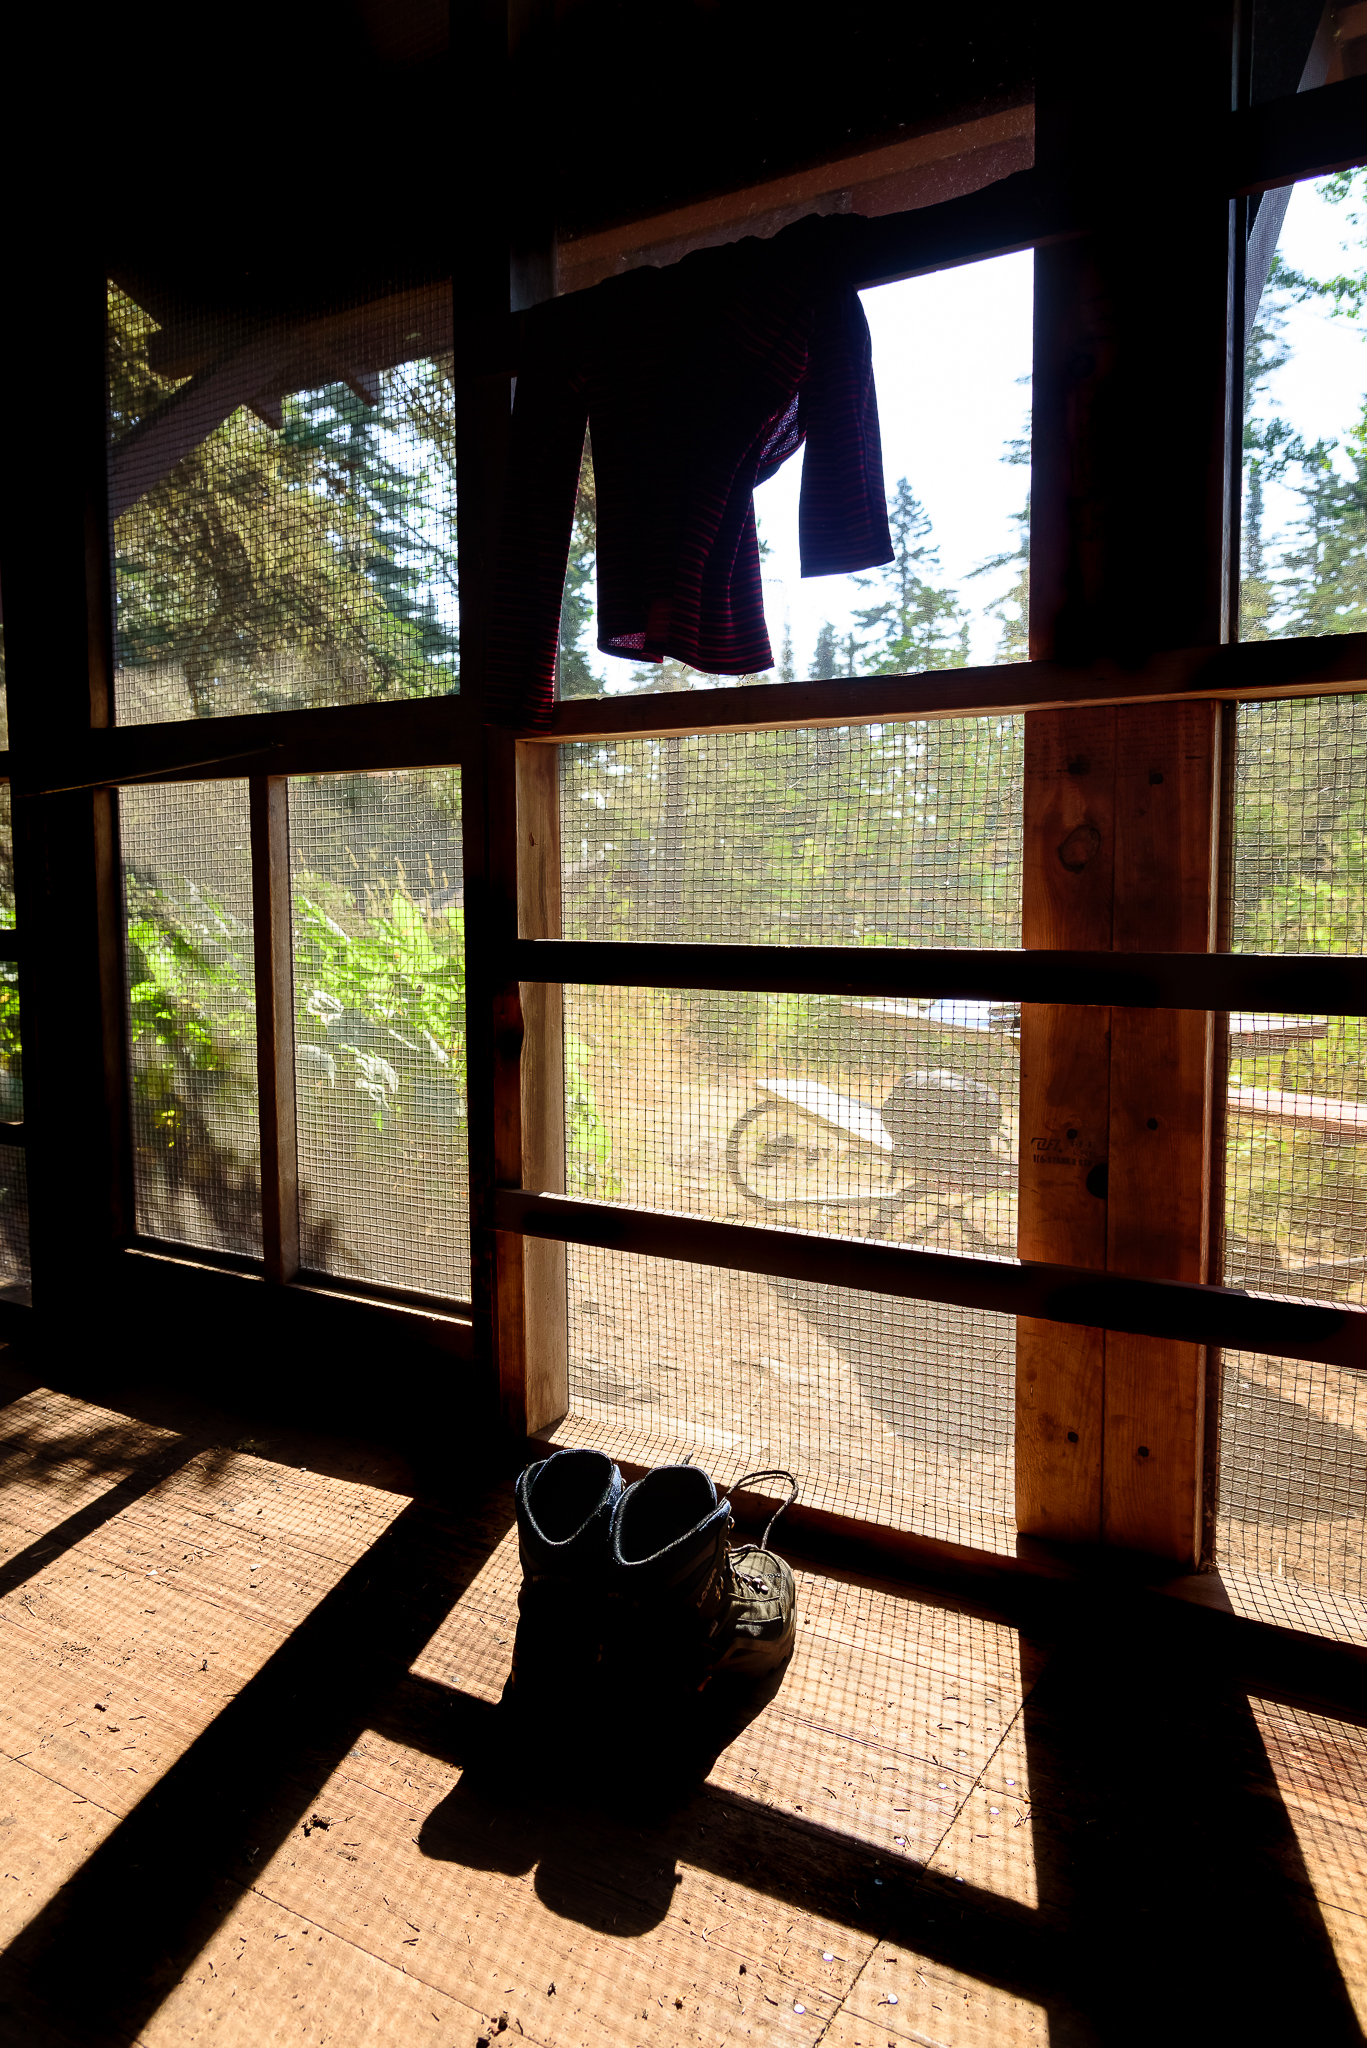 Almost too cozy of accommodations. Rock Harbor Campground, Isle Royale, NP.